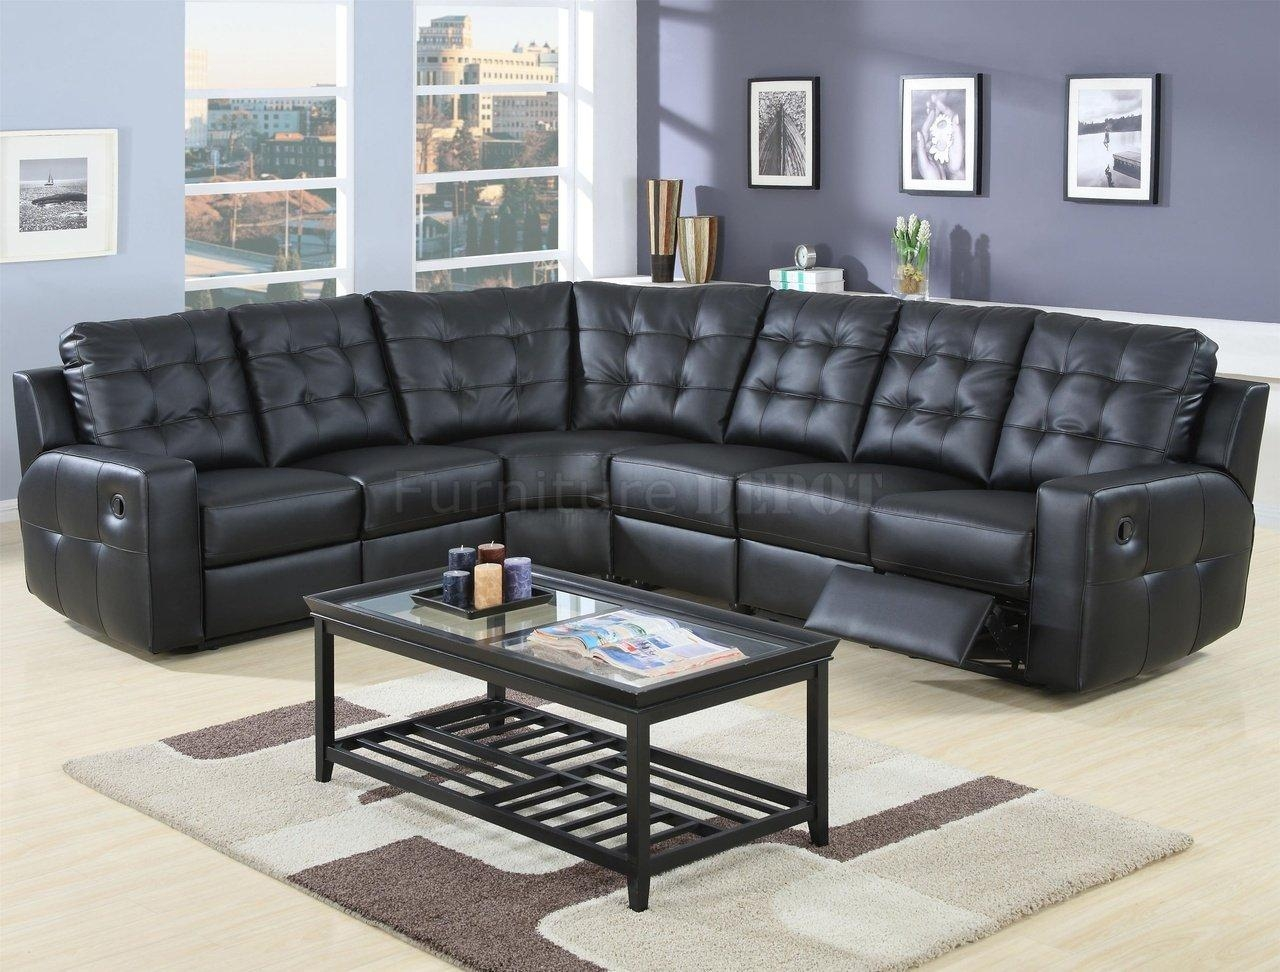 lazy boy microfiber sofa small 2 seater dimensions 20 best ideas leather sectional |